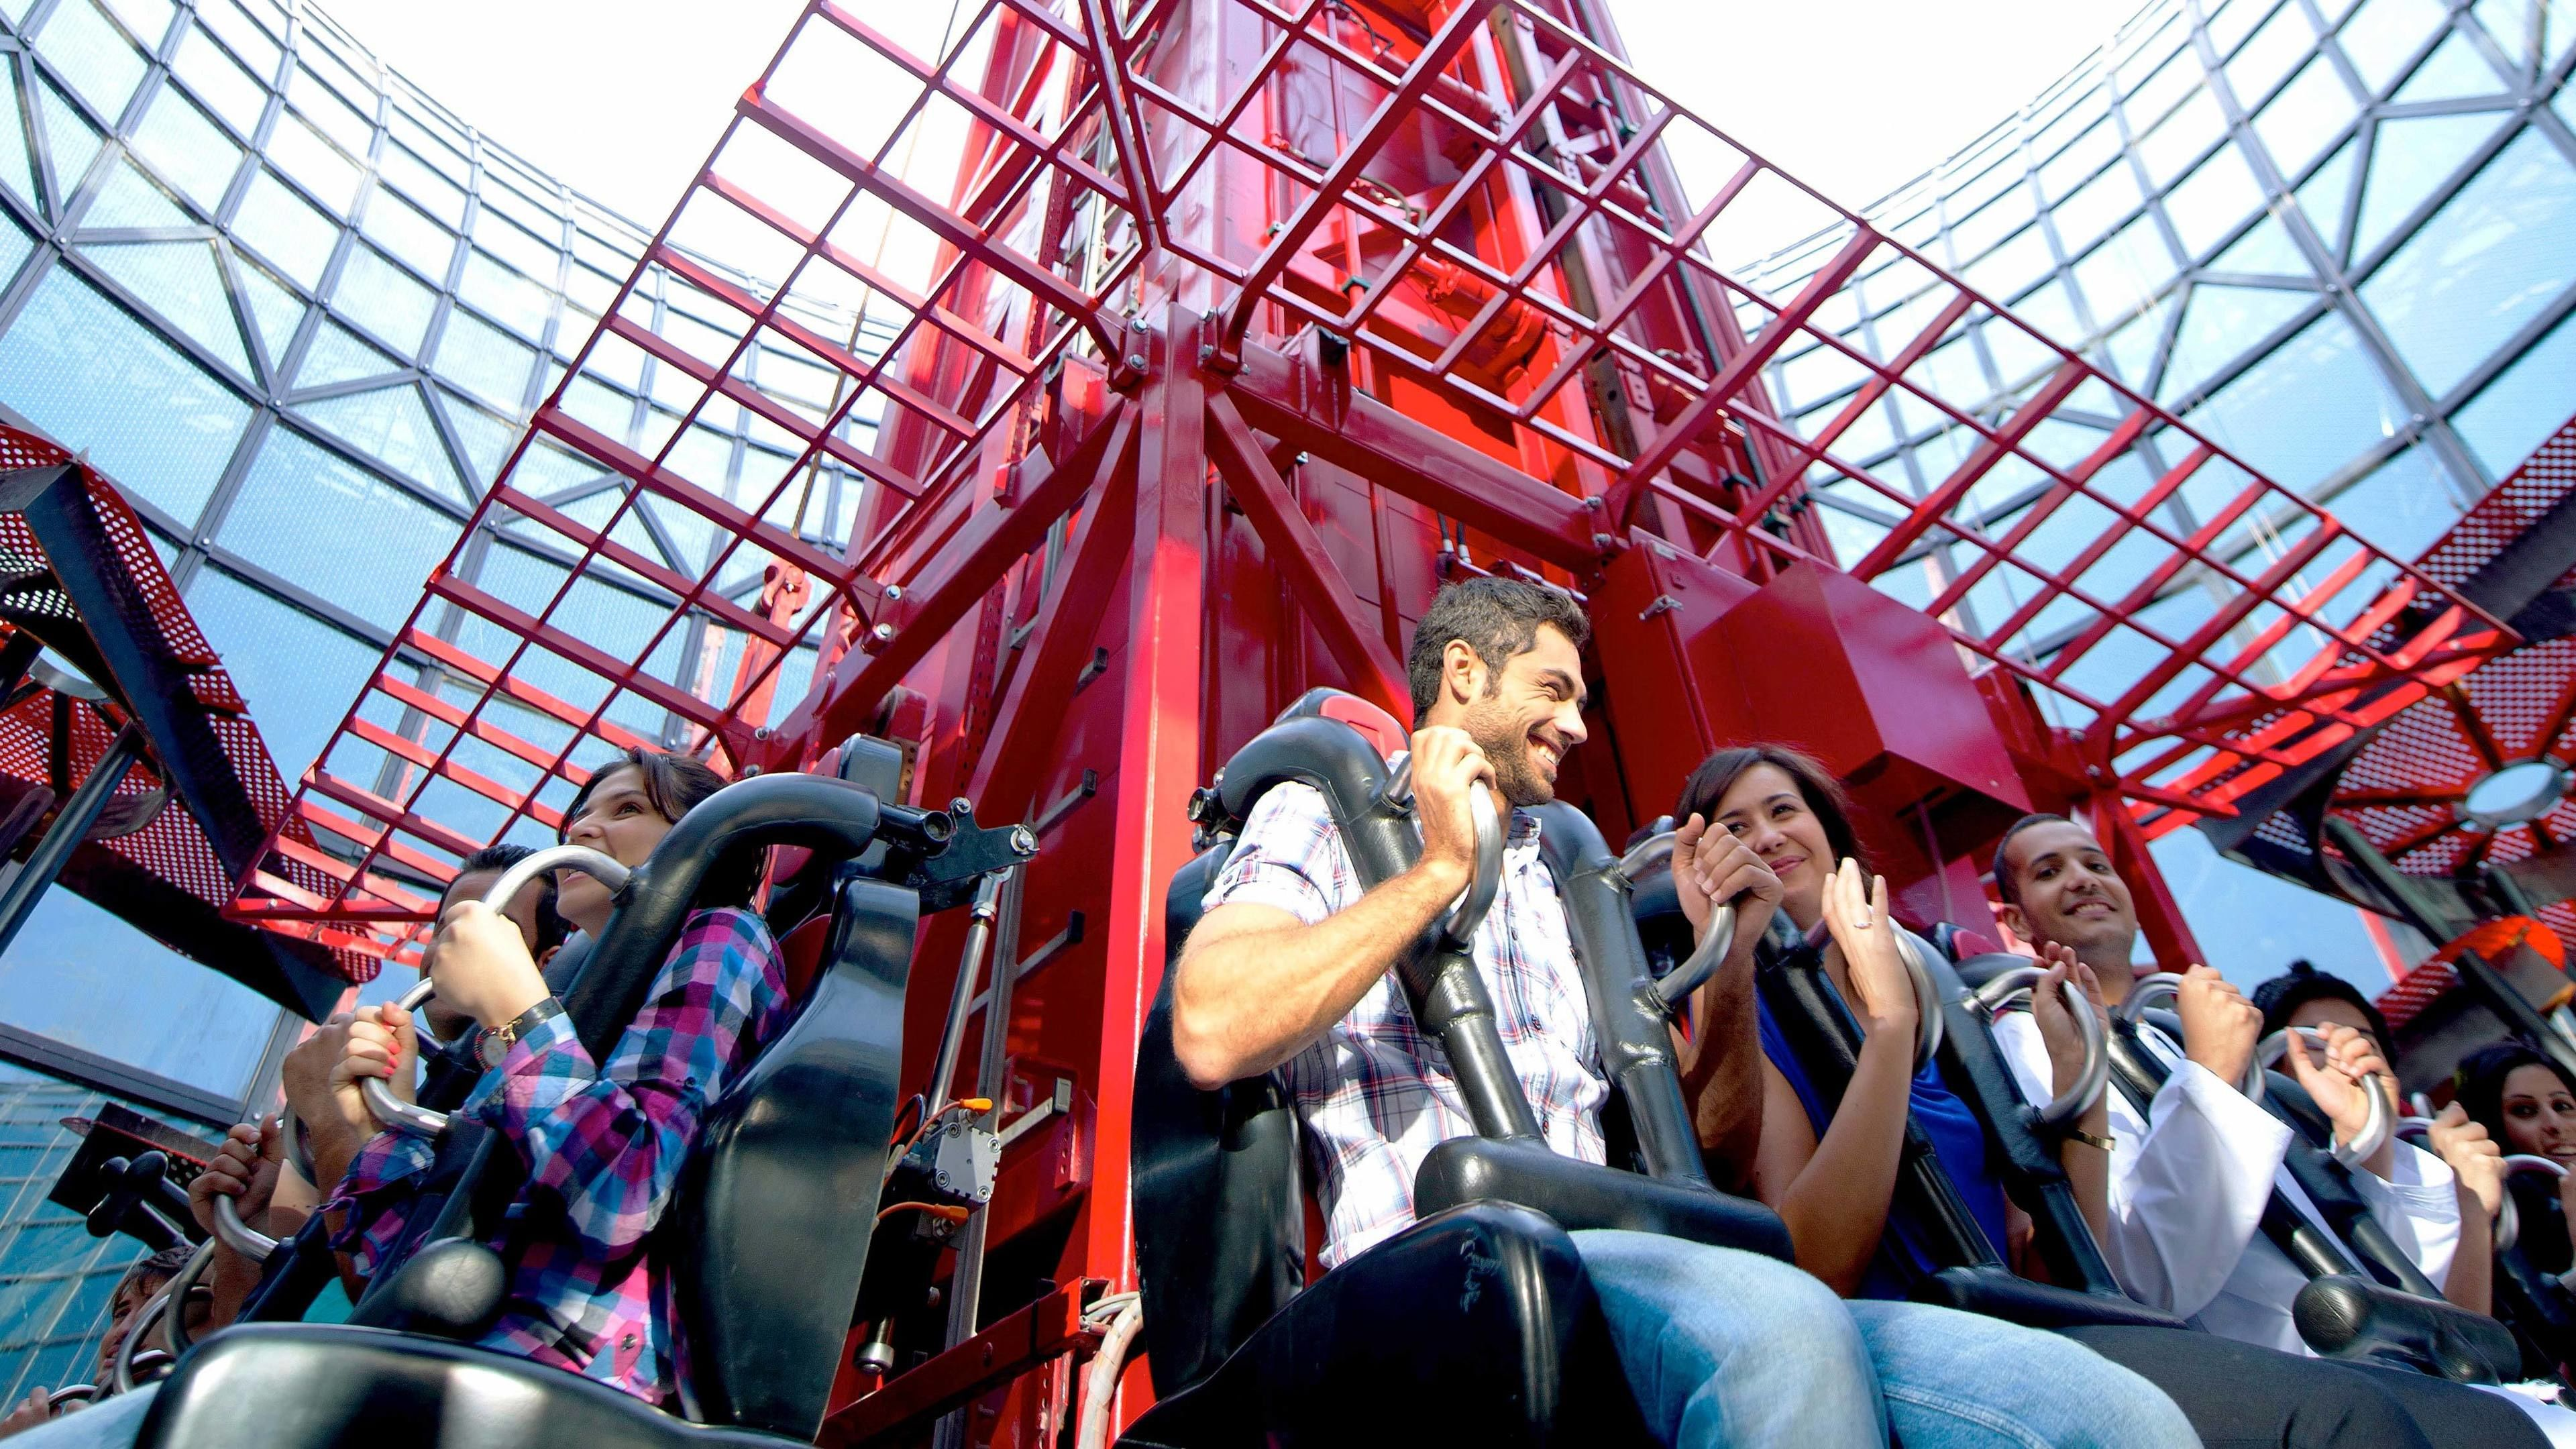 people strapped into ride at theme park in Dubai